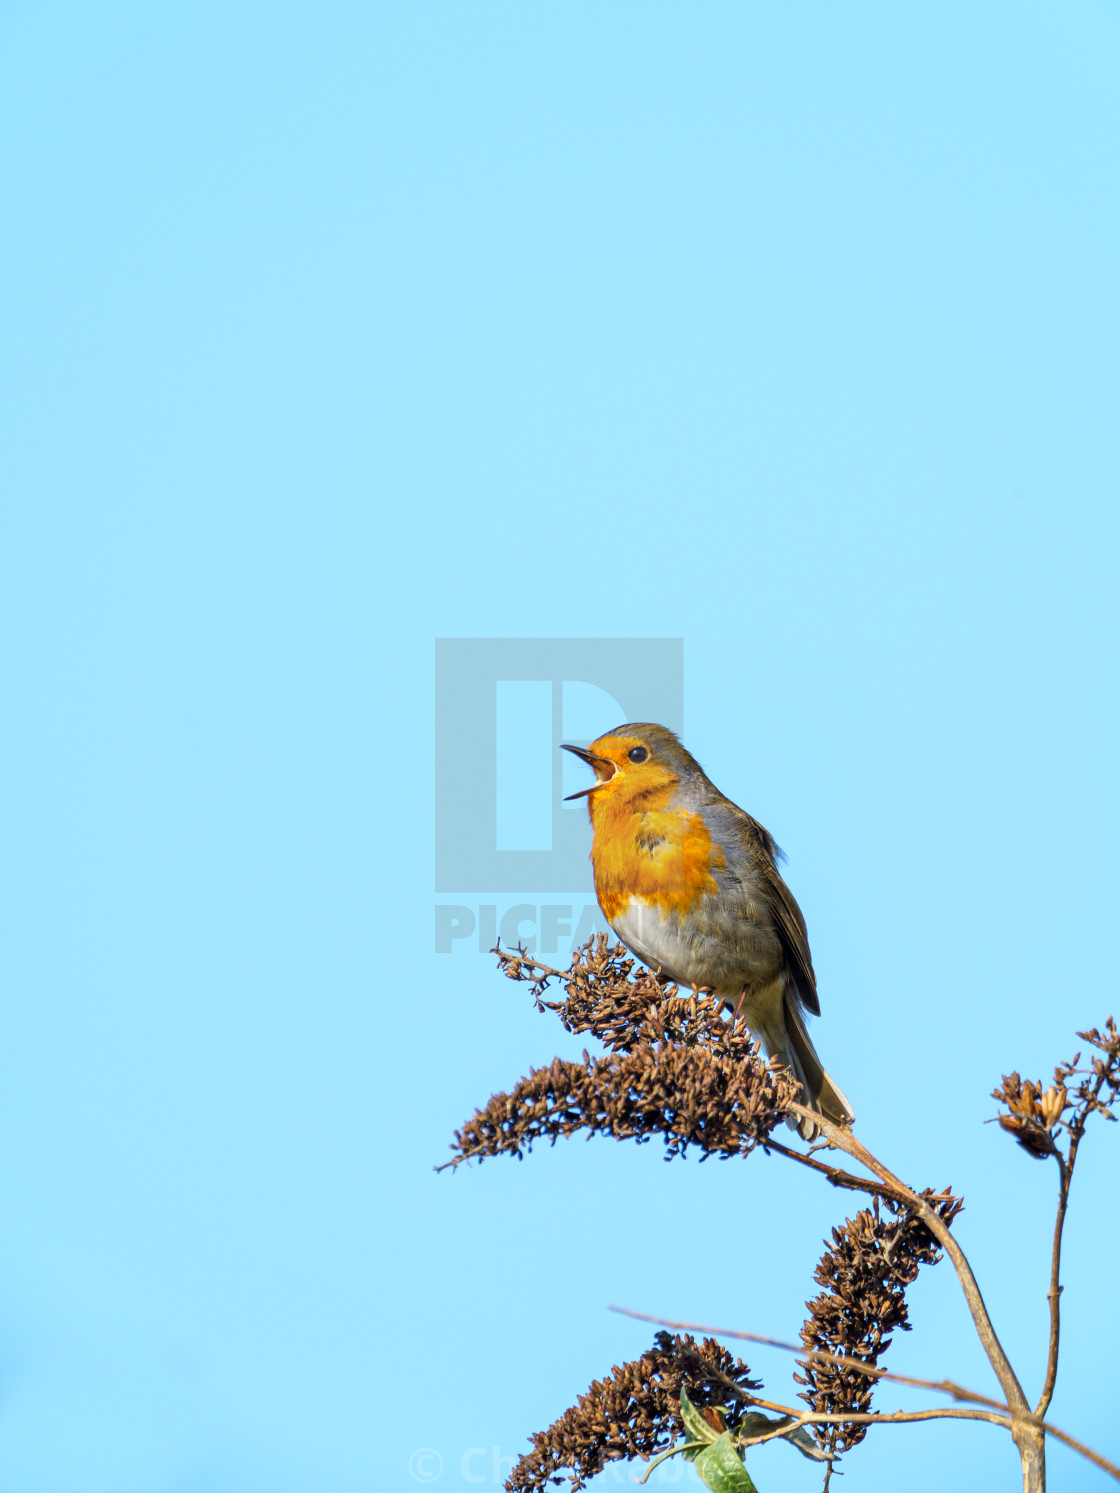 """European Robin (Erithacus rubecula) perched on a bush, singing, taken in the UK"" stock image"